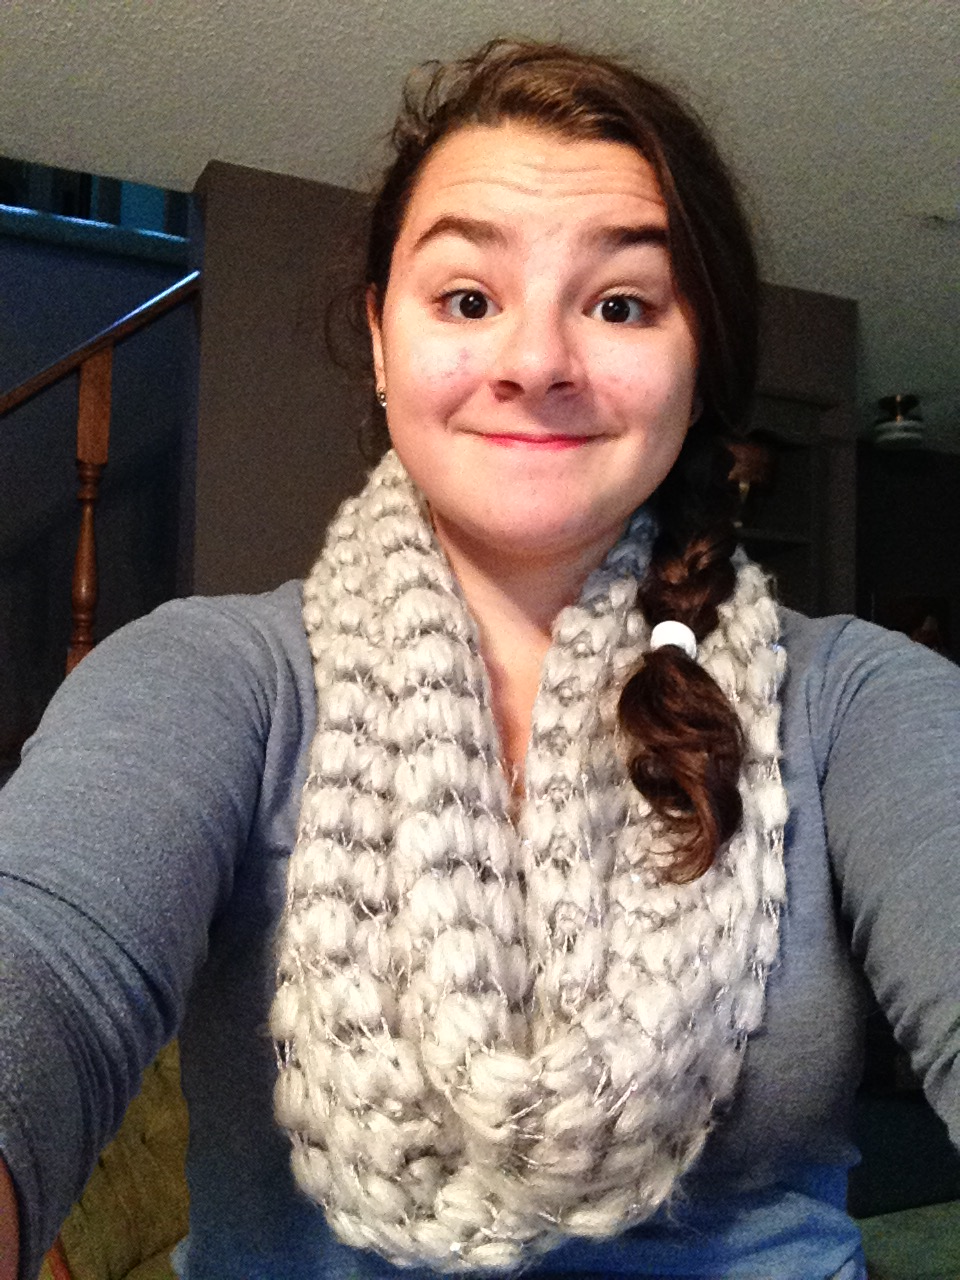 Or when I wanted to document my wearing the first scarf of the season, but the selfie made my arms look ginormous.